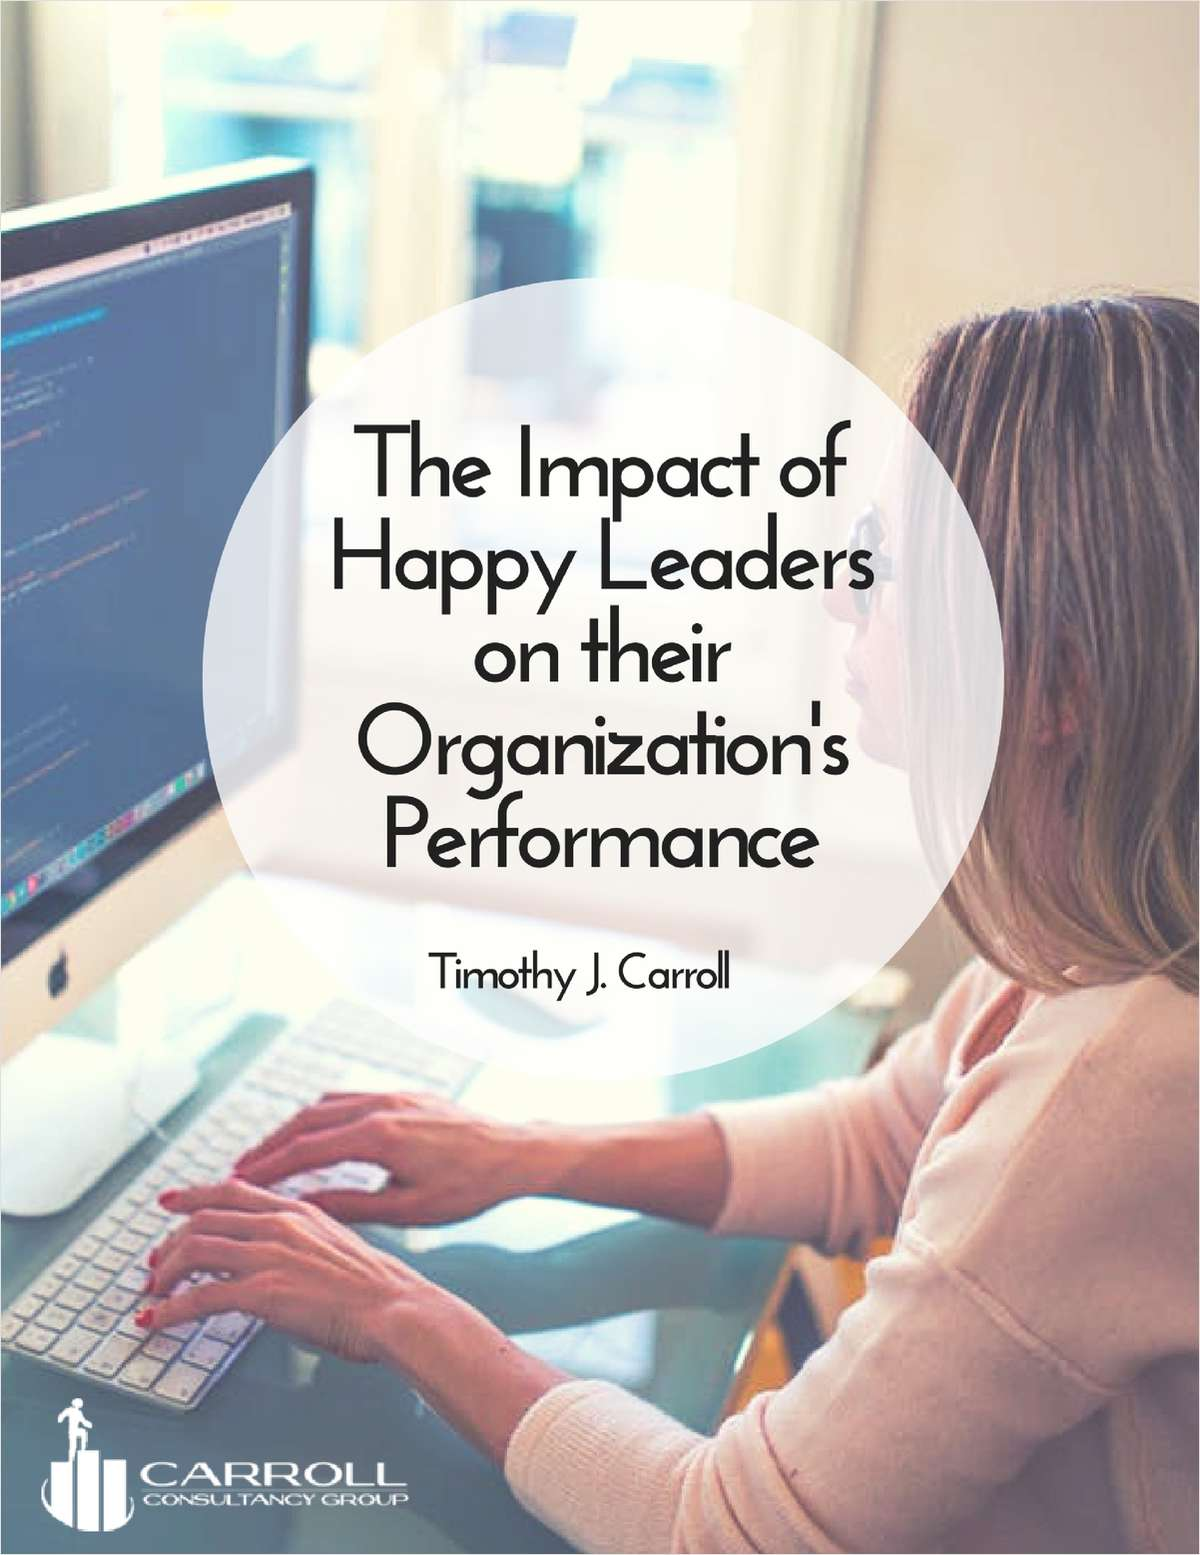 The Impact of Happy Leaders on their Organization's Performance